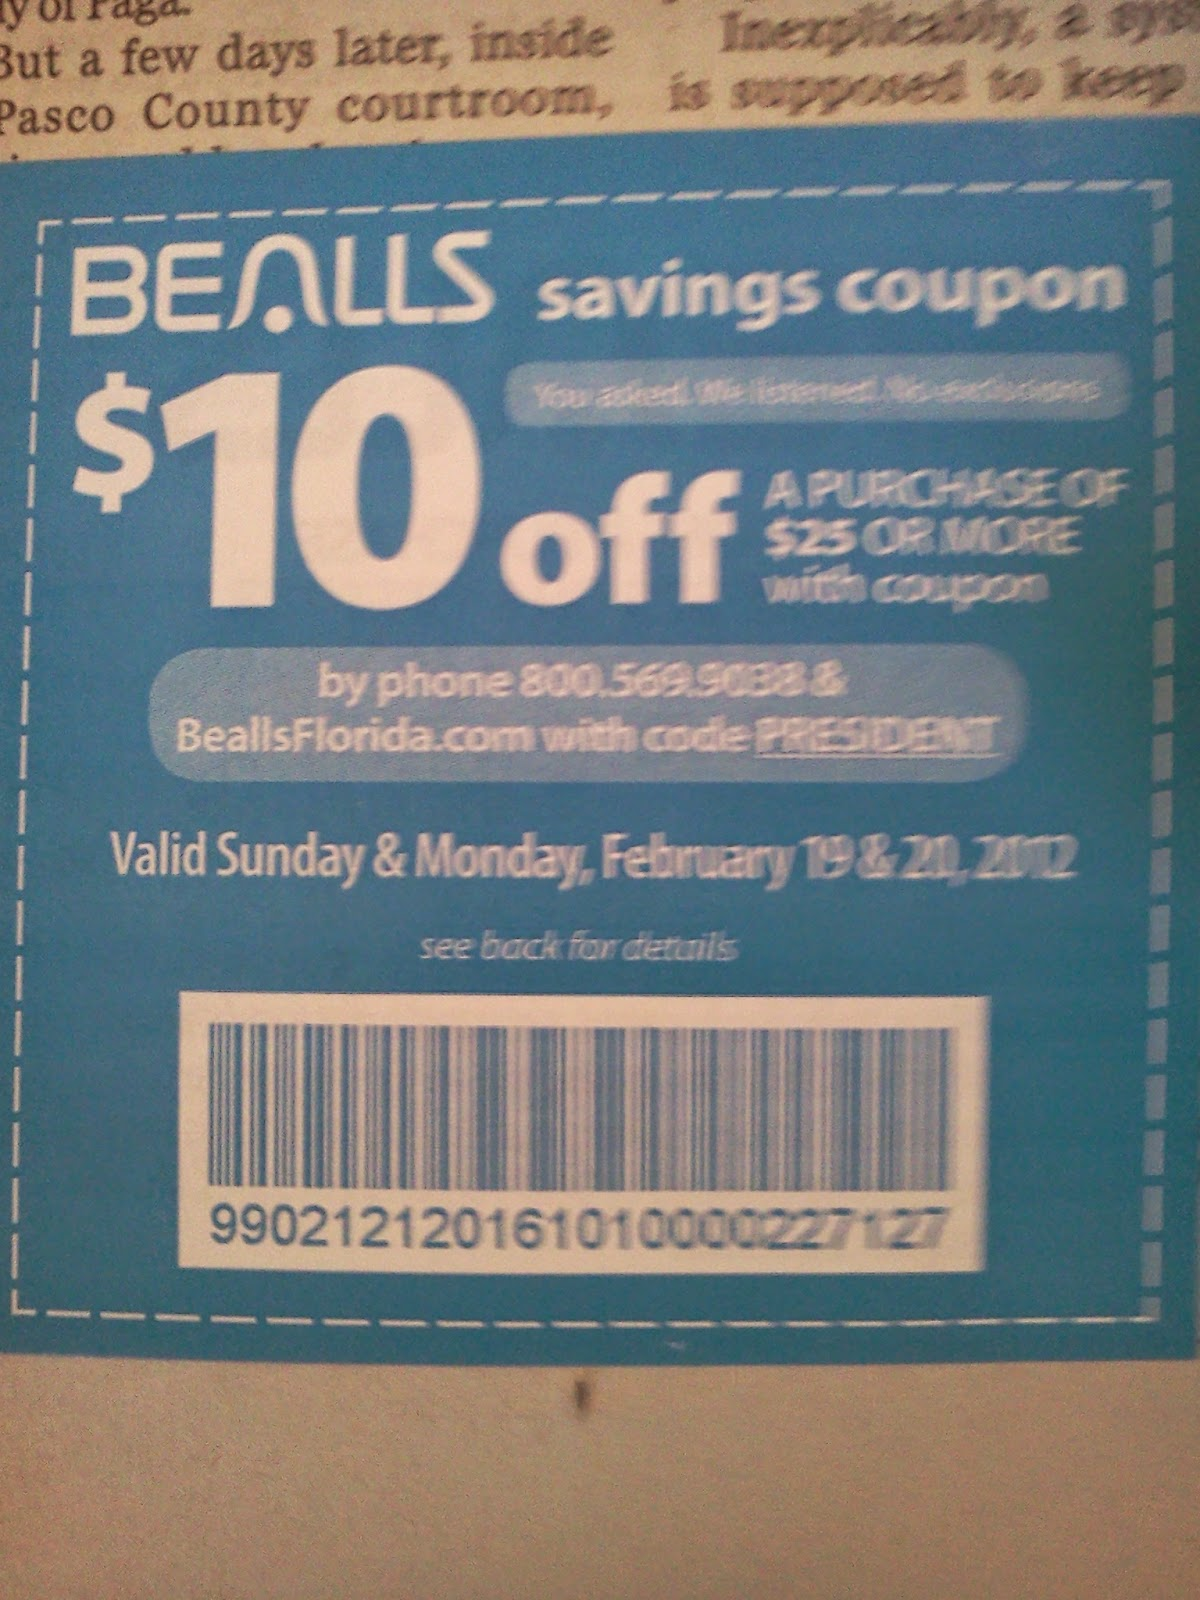 photo about Palais Royal Printable Coupons named Bealls florida printable coupon codes / Columbus in just united states of america